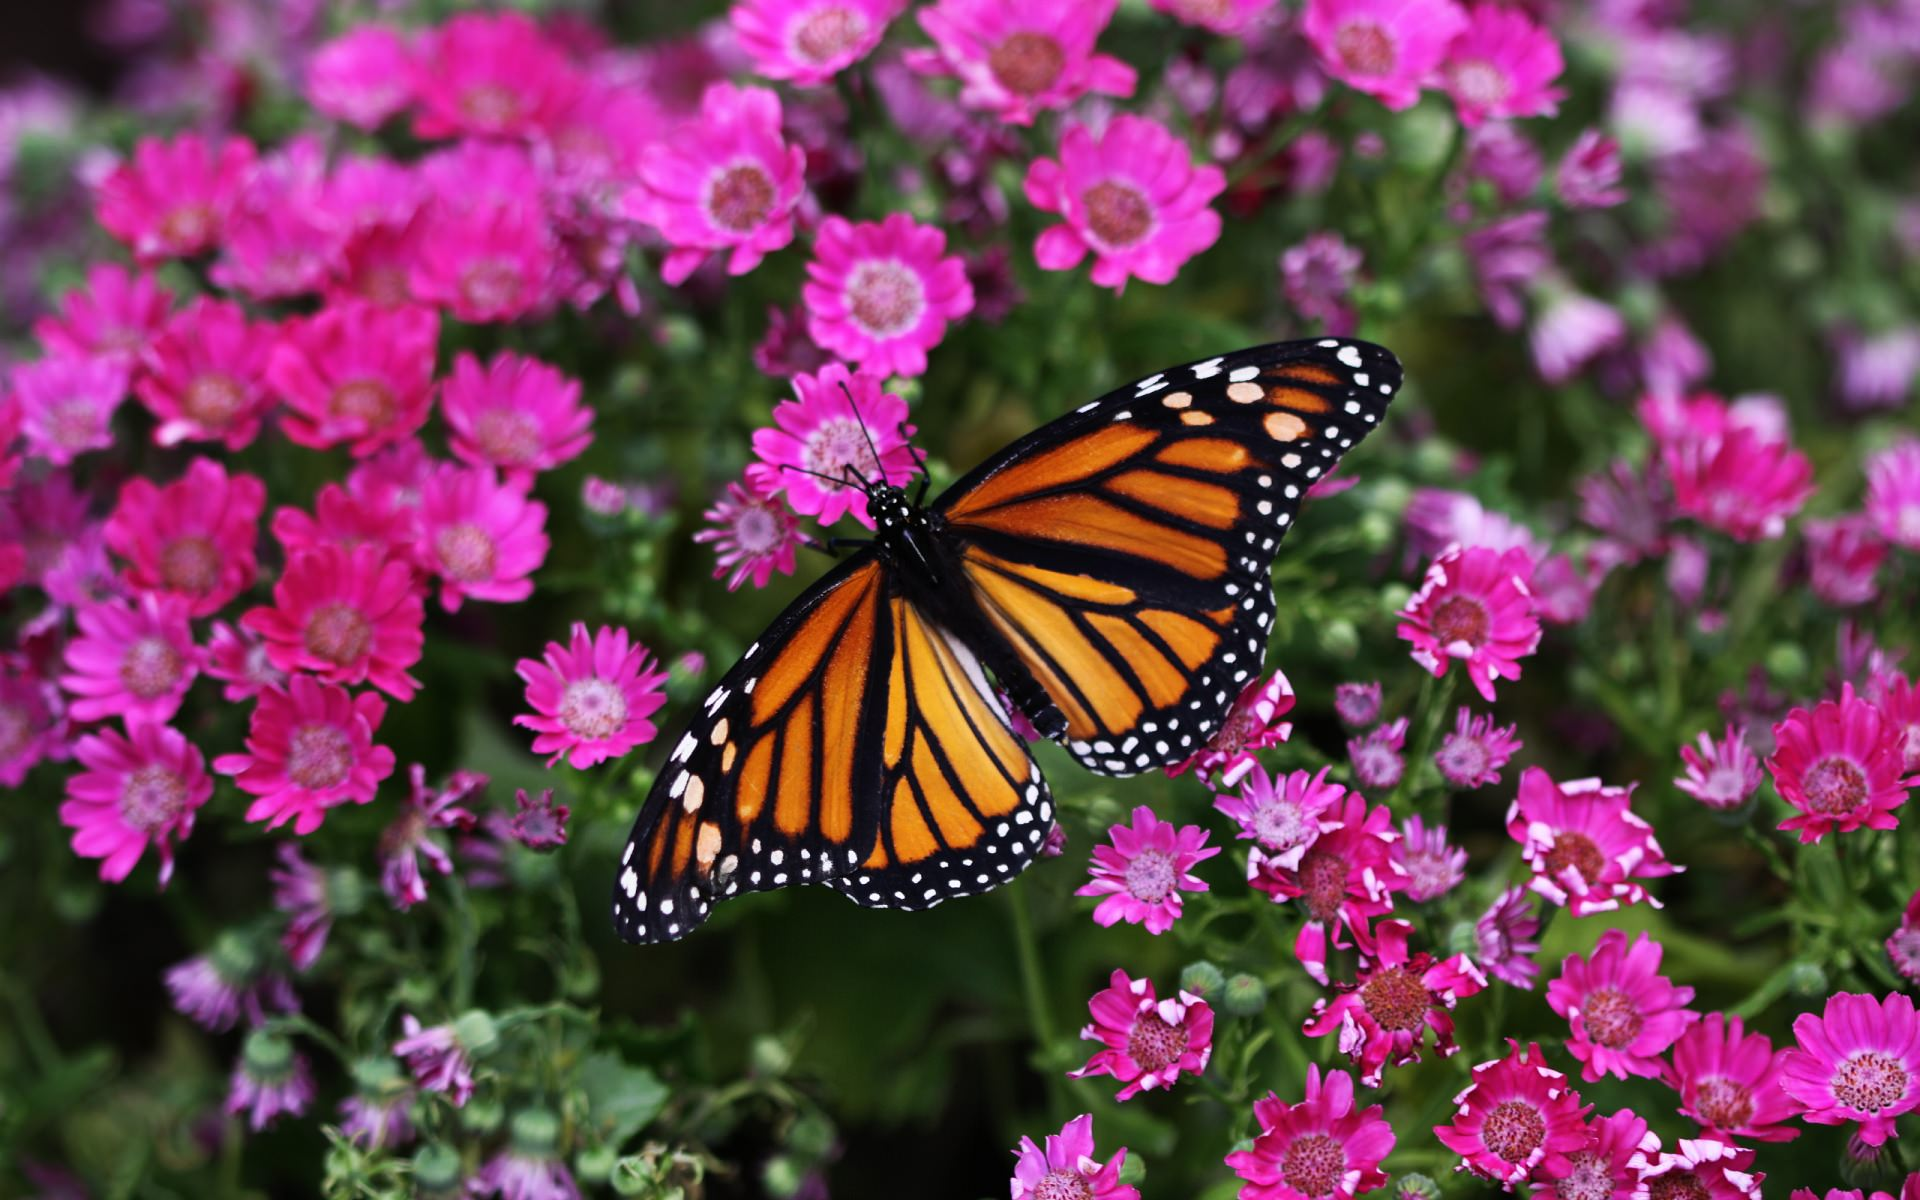 Butterfly on Pestal Flower Background